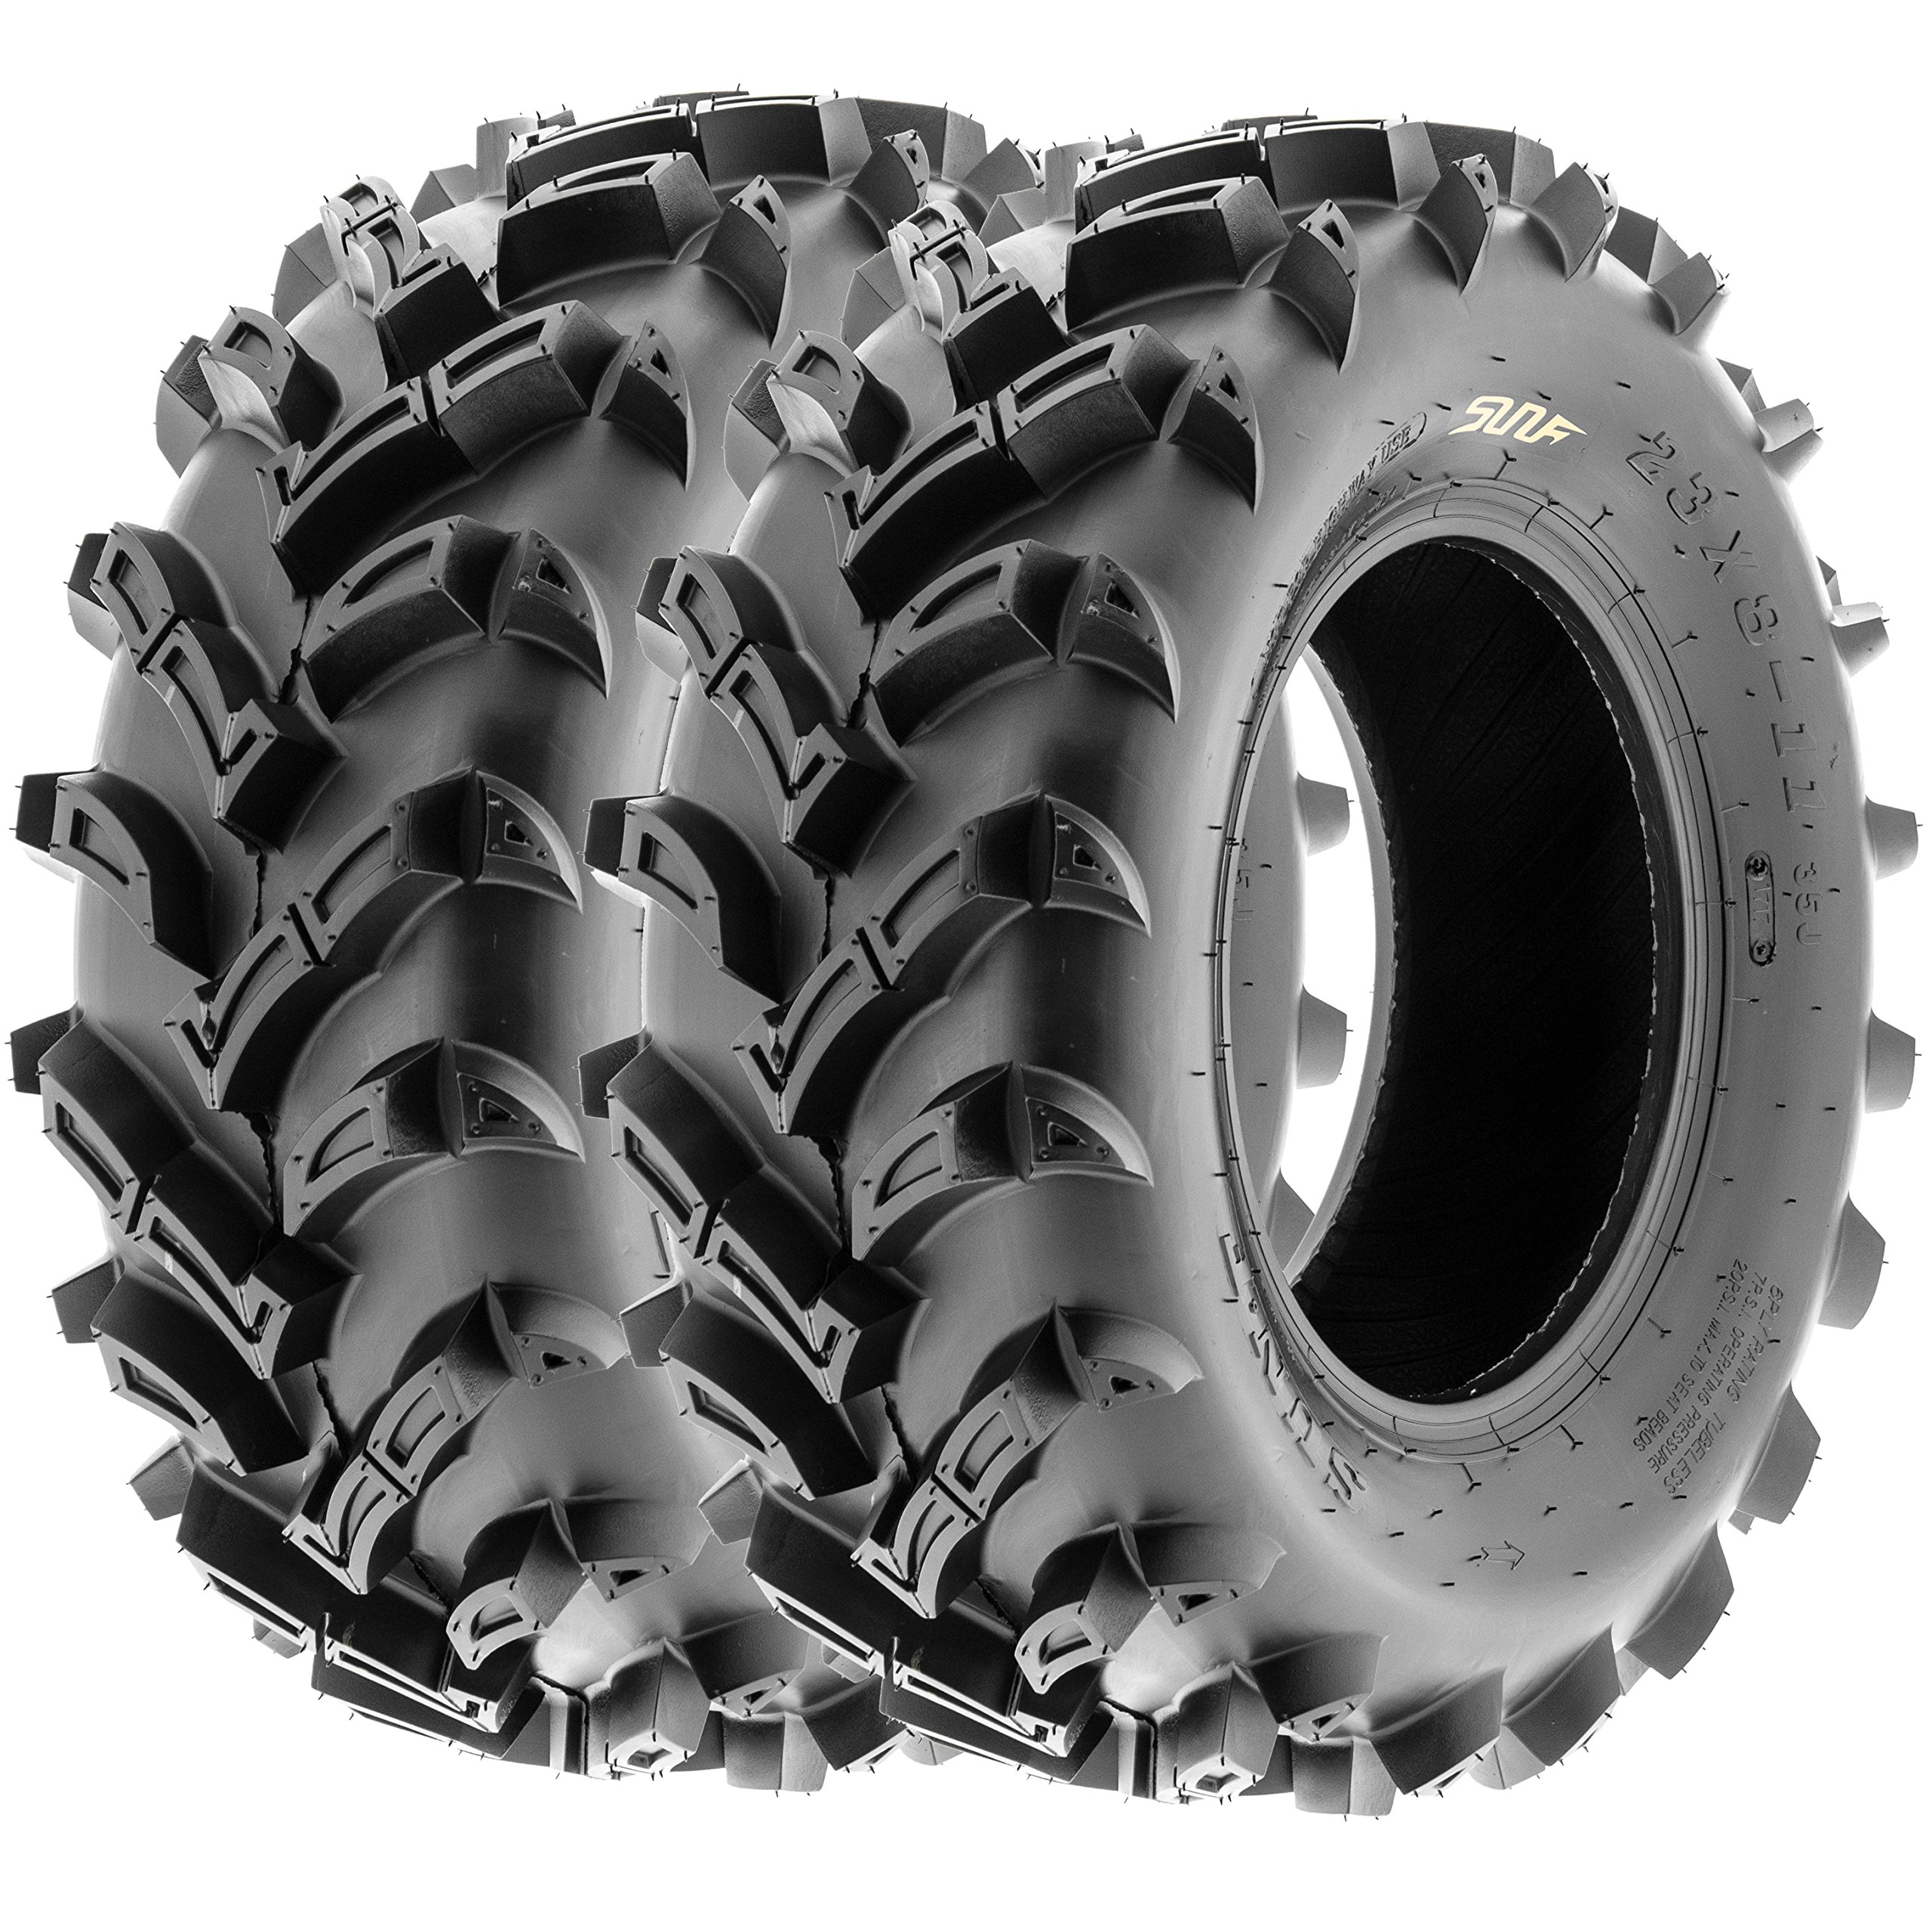 SunF ATV UTV Mud & All Terrain Tires 23x8-11 23x8x11 6 PR A024 (Set pair of 2)